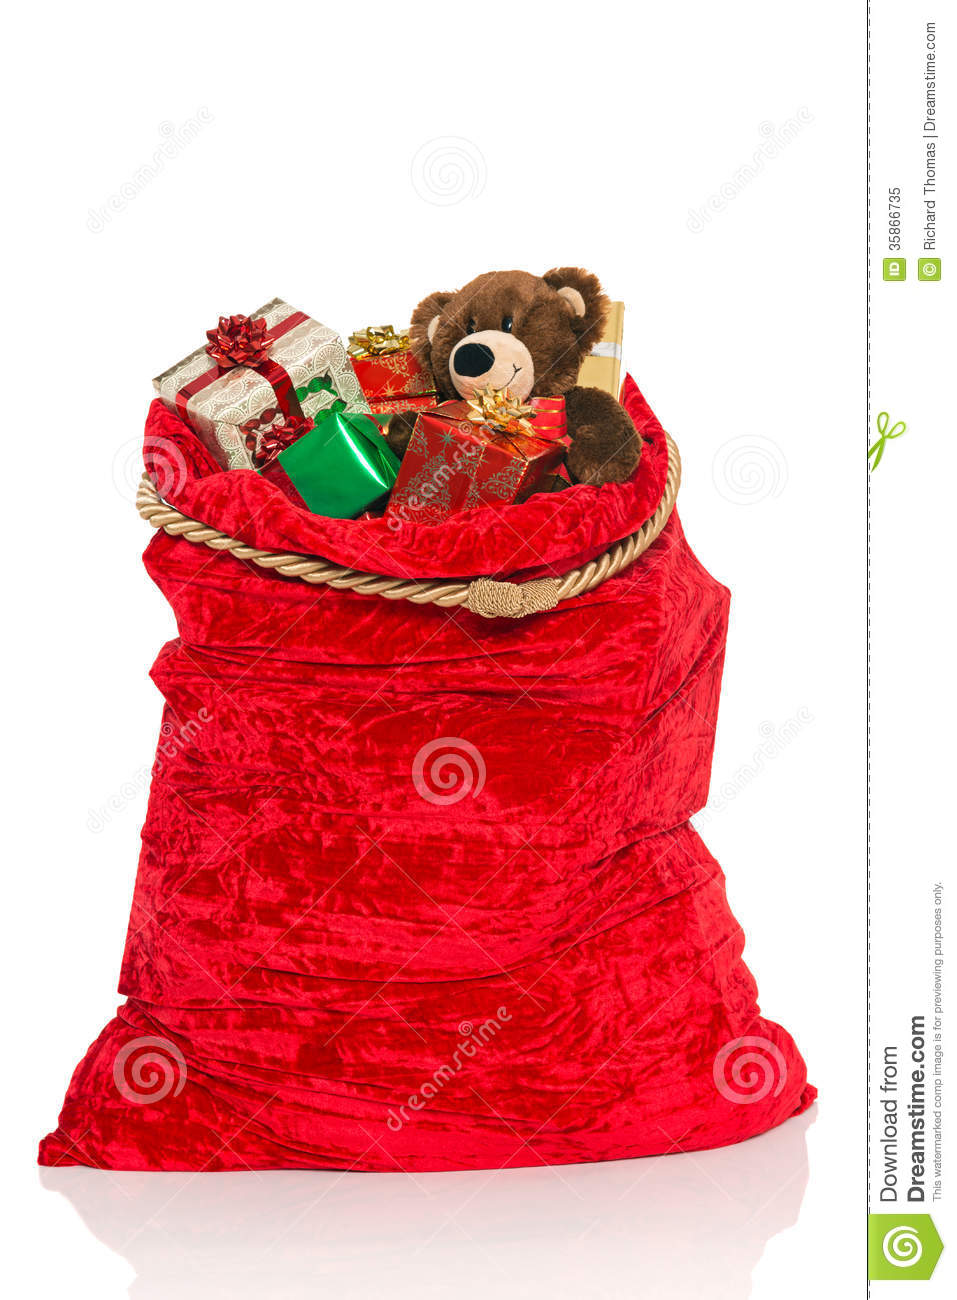 red Christmas sack full of gift wrapped presents and a handmade bear ...